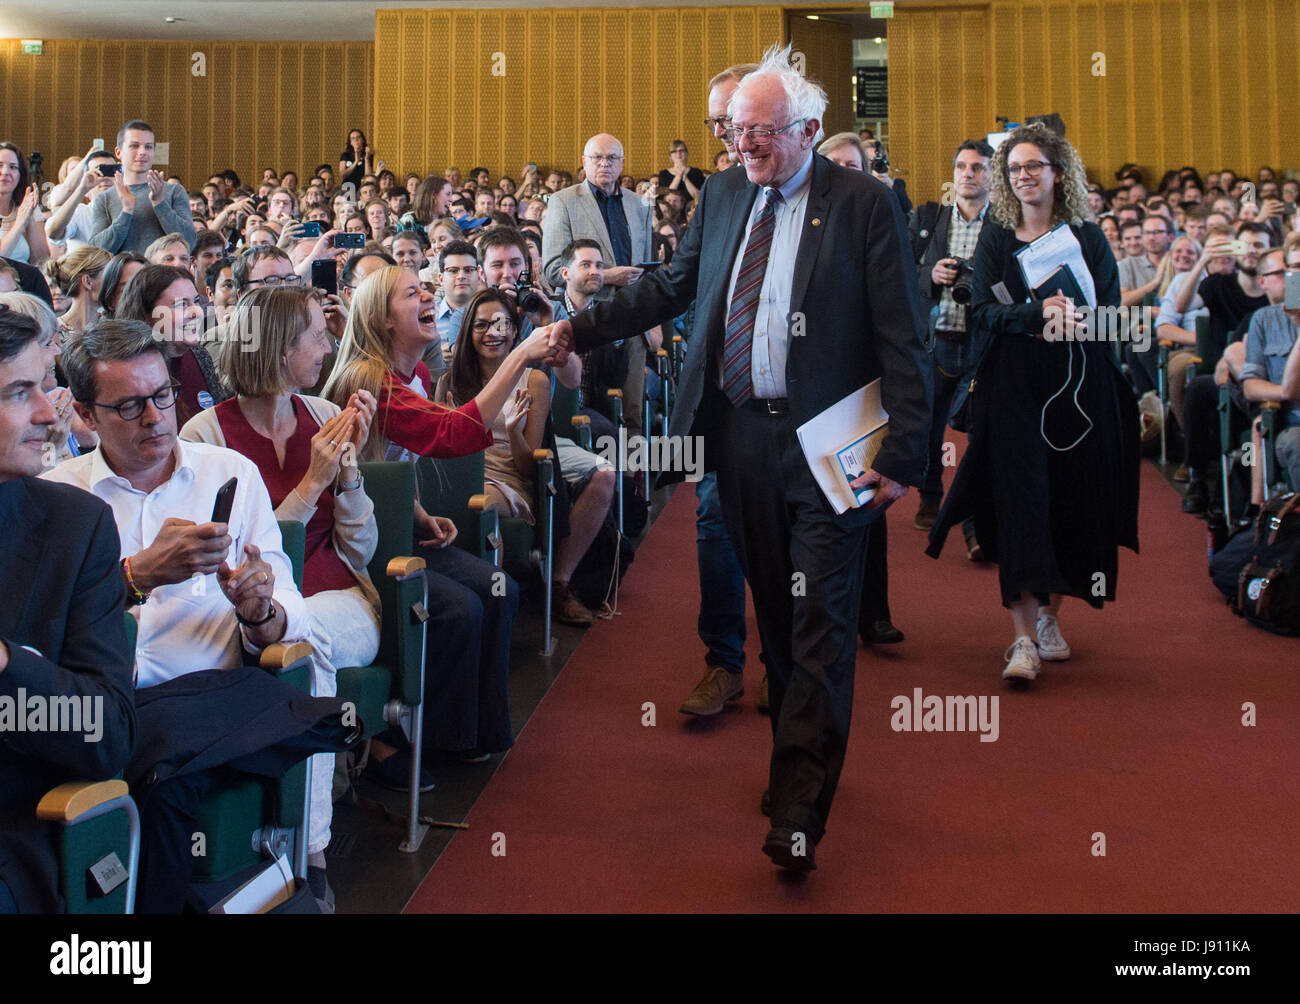 Berlin, Germany. 31st May, 2017. US politician and former presidential candidate Bernie Sanders arrives to the Herny - Stock Image